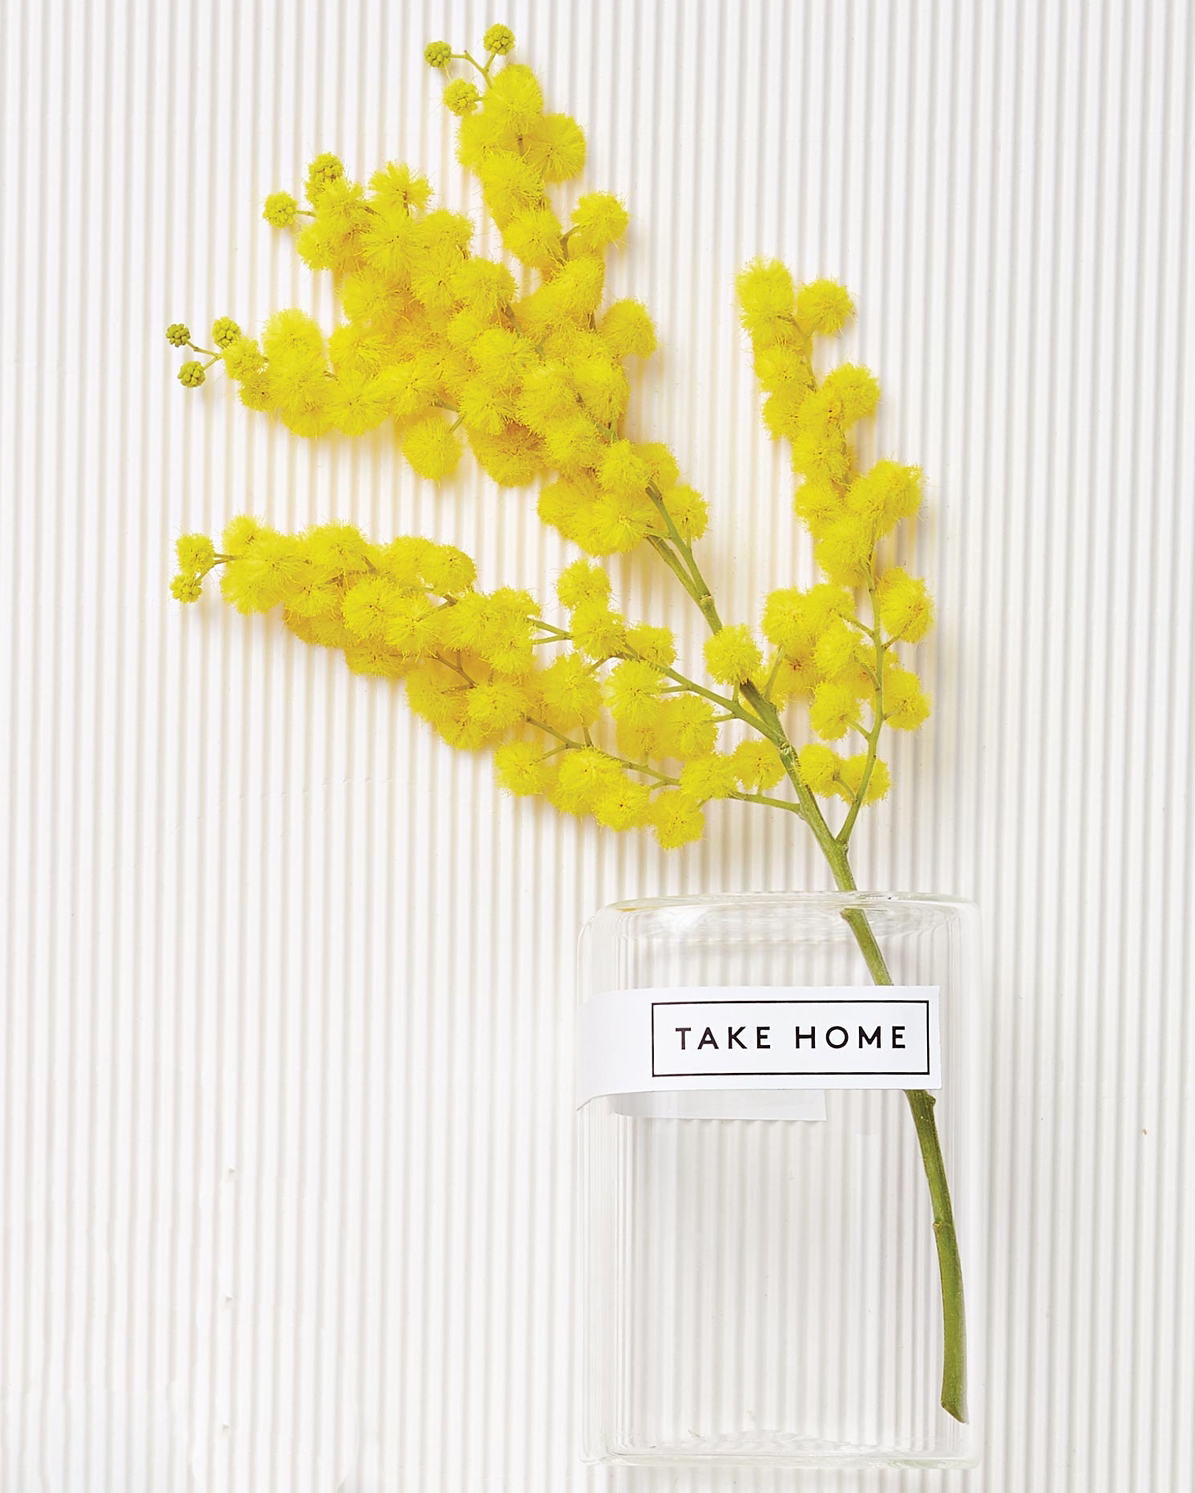 party-favors-packaging-clear-with-labels-mimosa-flowers-take-home-079-d112911.jpg